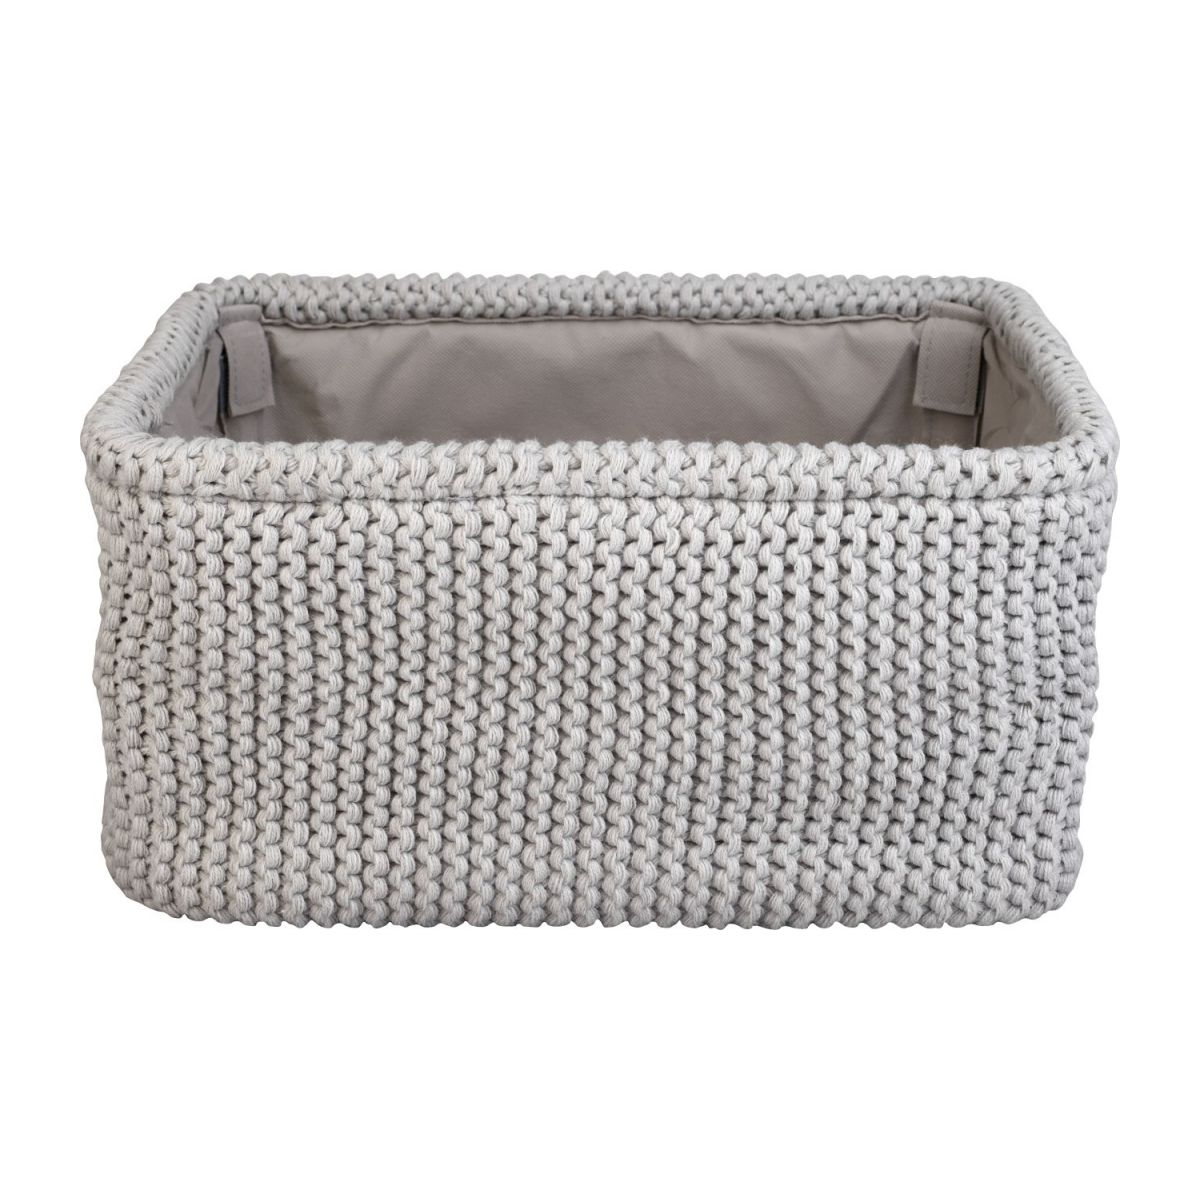 Small square basket n°2